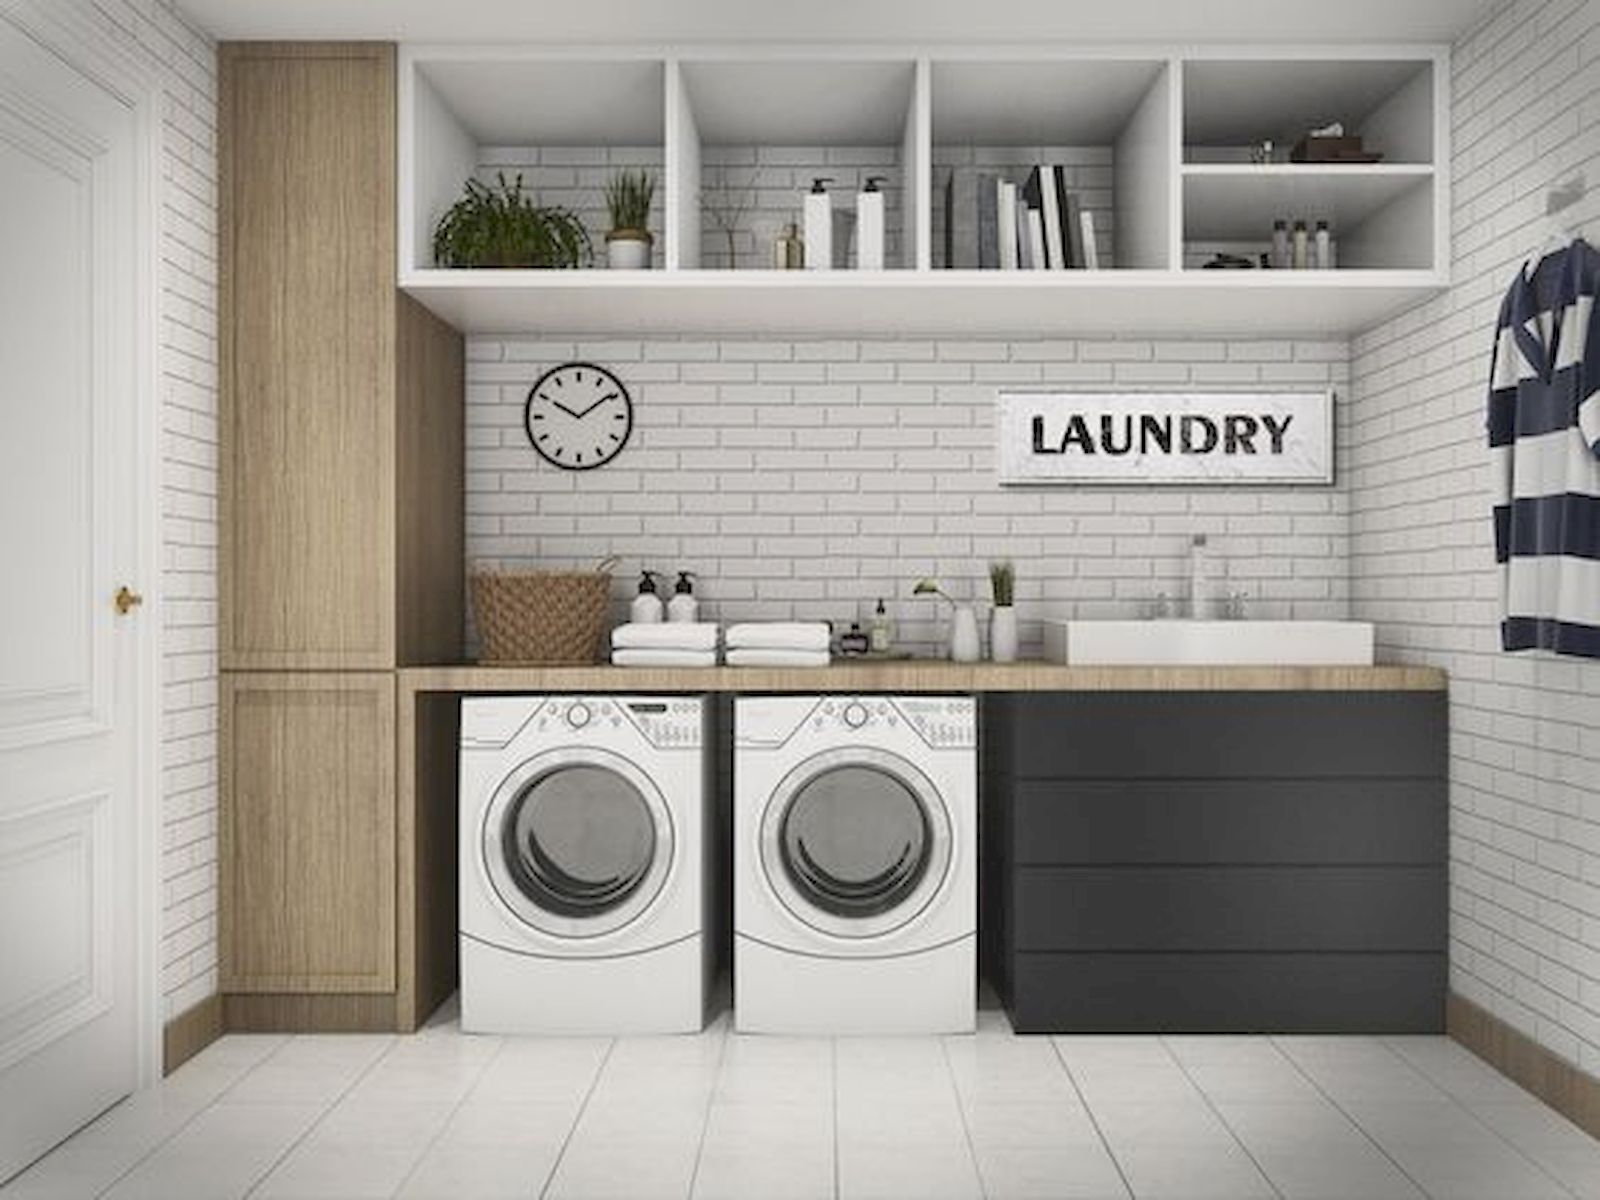 55 Gorgeous Laundry Room Design Ideas and Decorations (46)